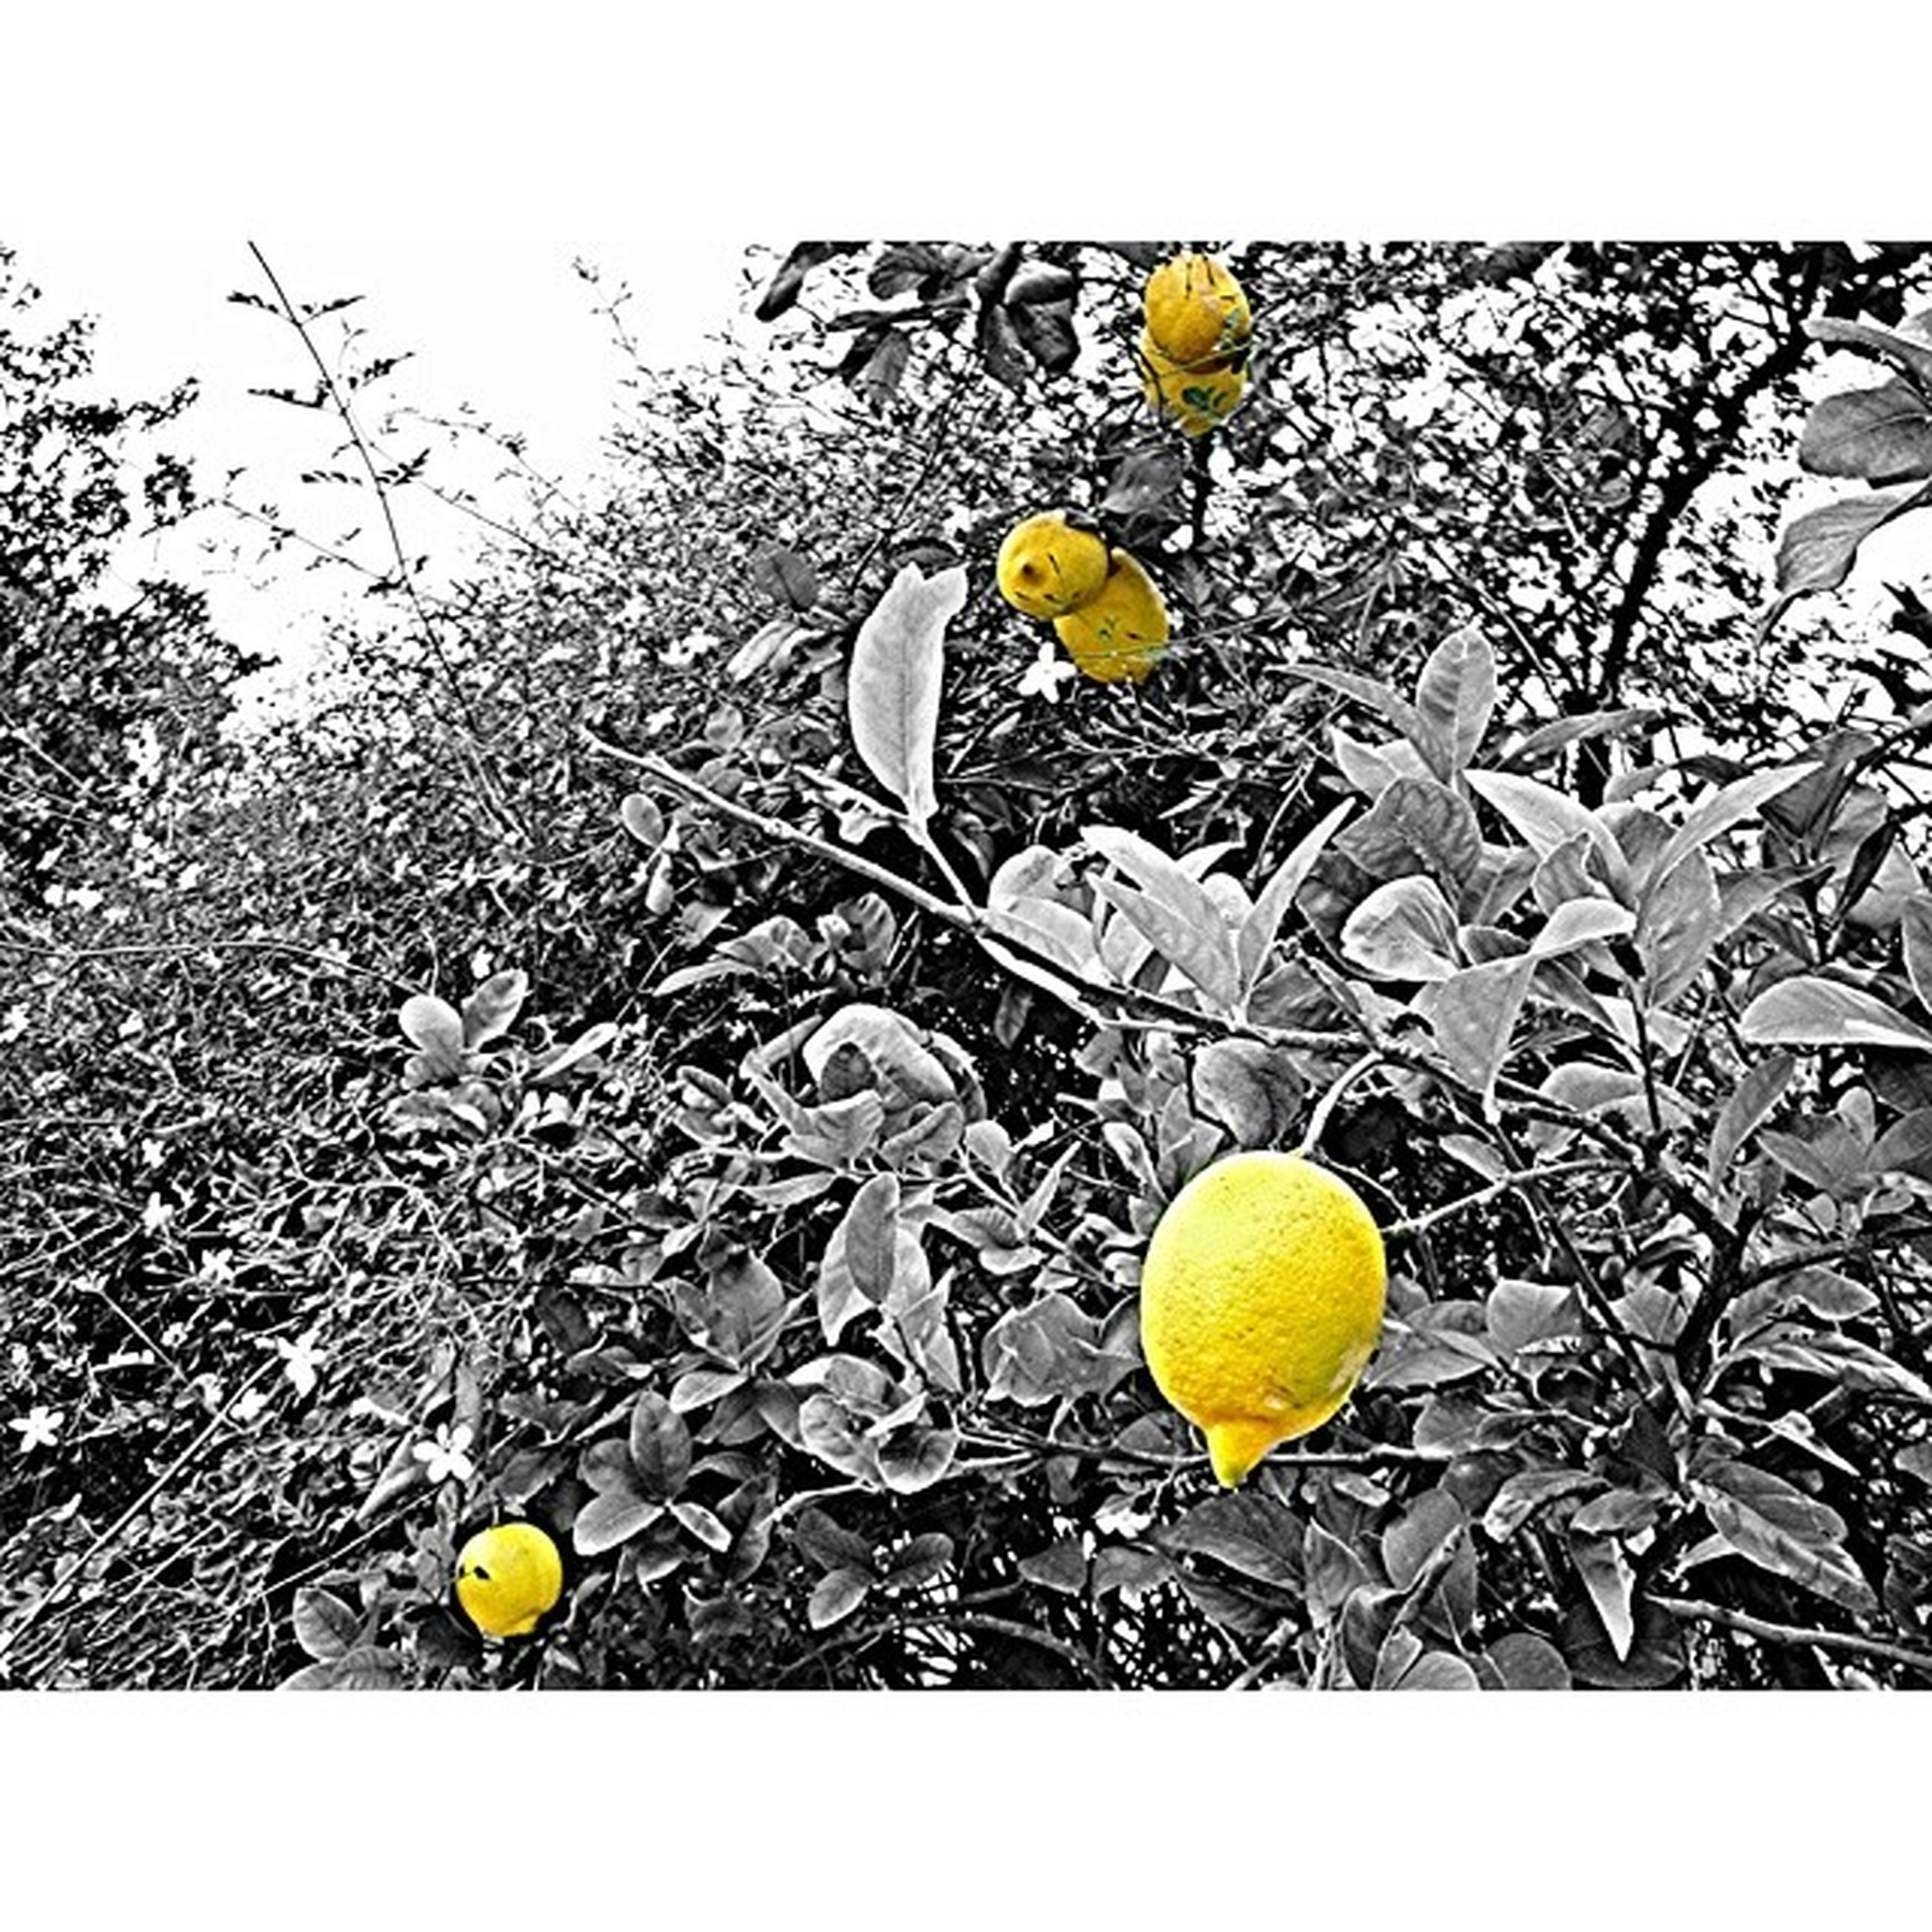 yellow, fruit, high angle view, nature, growth, leaf, day, food, freshness, close-up, transfer print, no people, field, food and drink, outdoors, healthy eating, green color, sunlight, lemon, auto post production filter